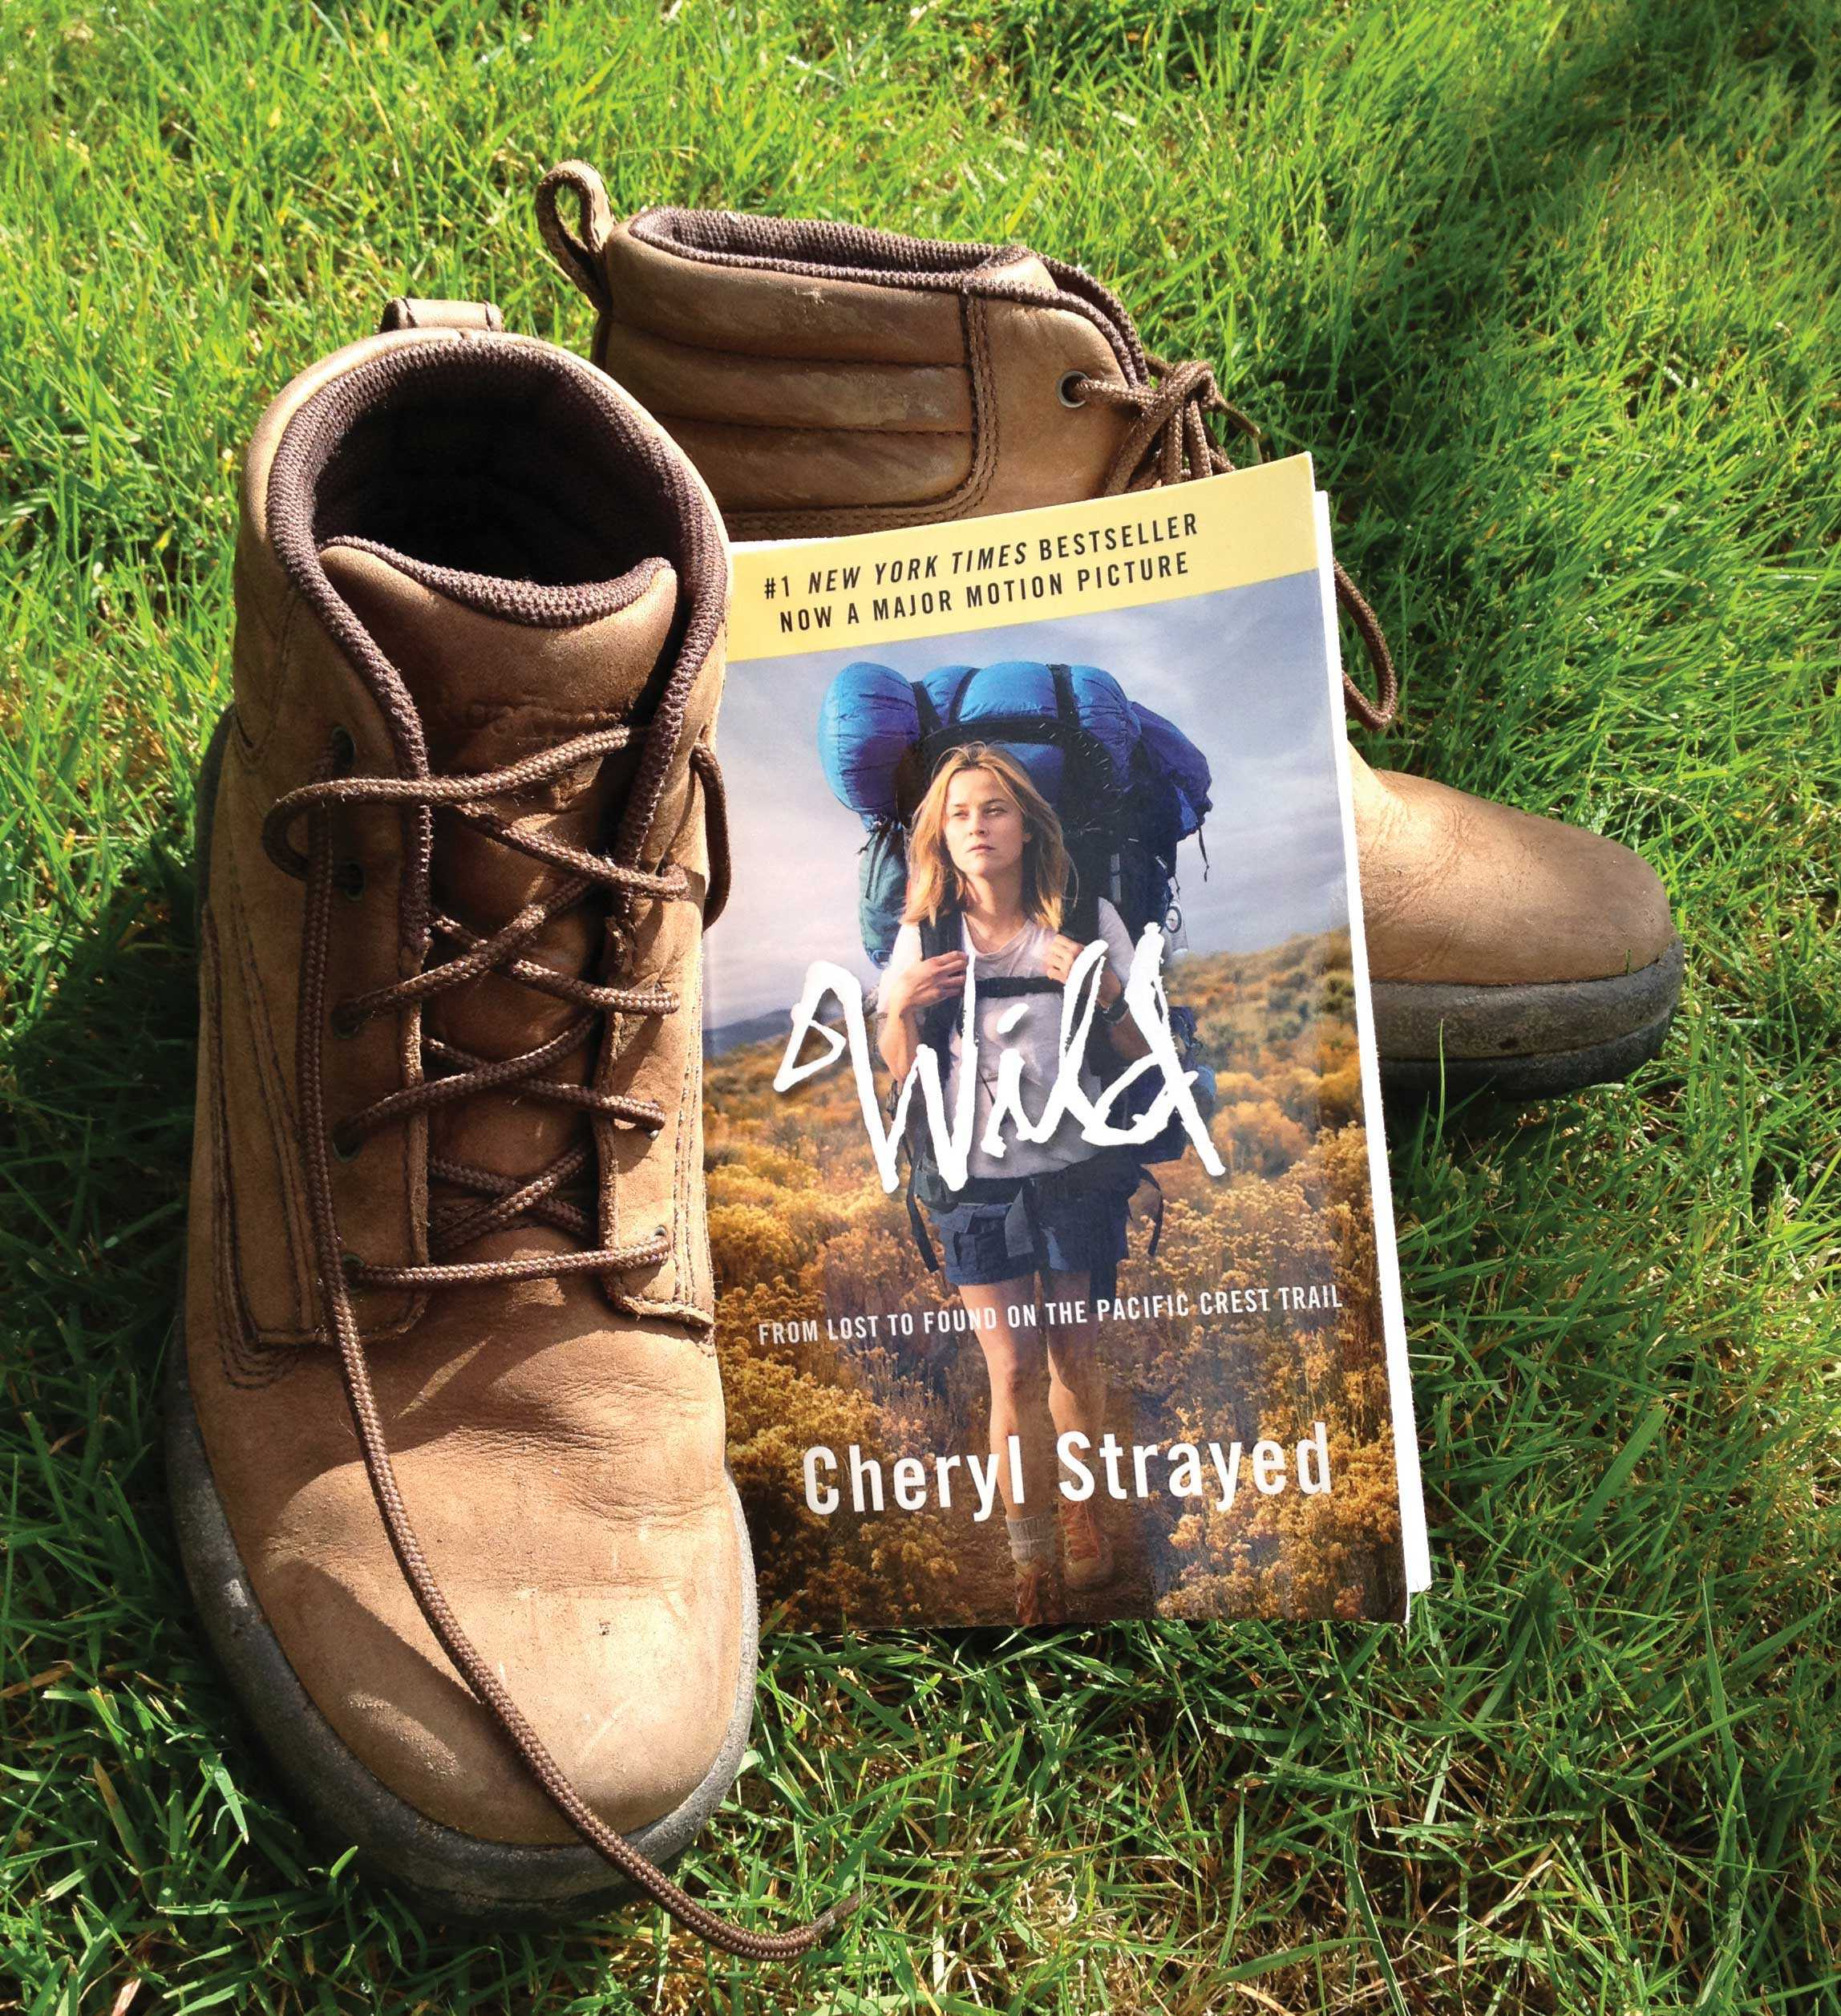 The cover of Wild by Cheryl Strayed. This cover features Reese Witherspoon, the actress Strayed wanted to portray her when her first person book moved to the cinema.